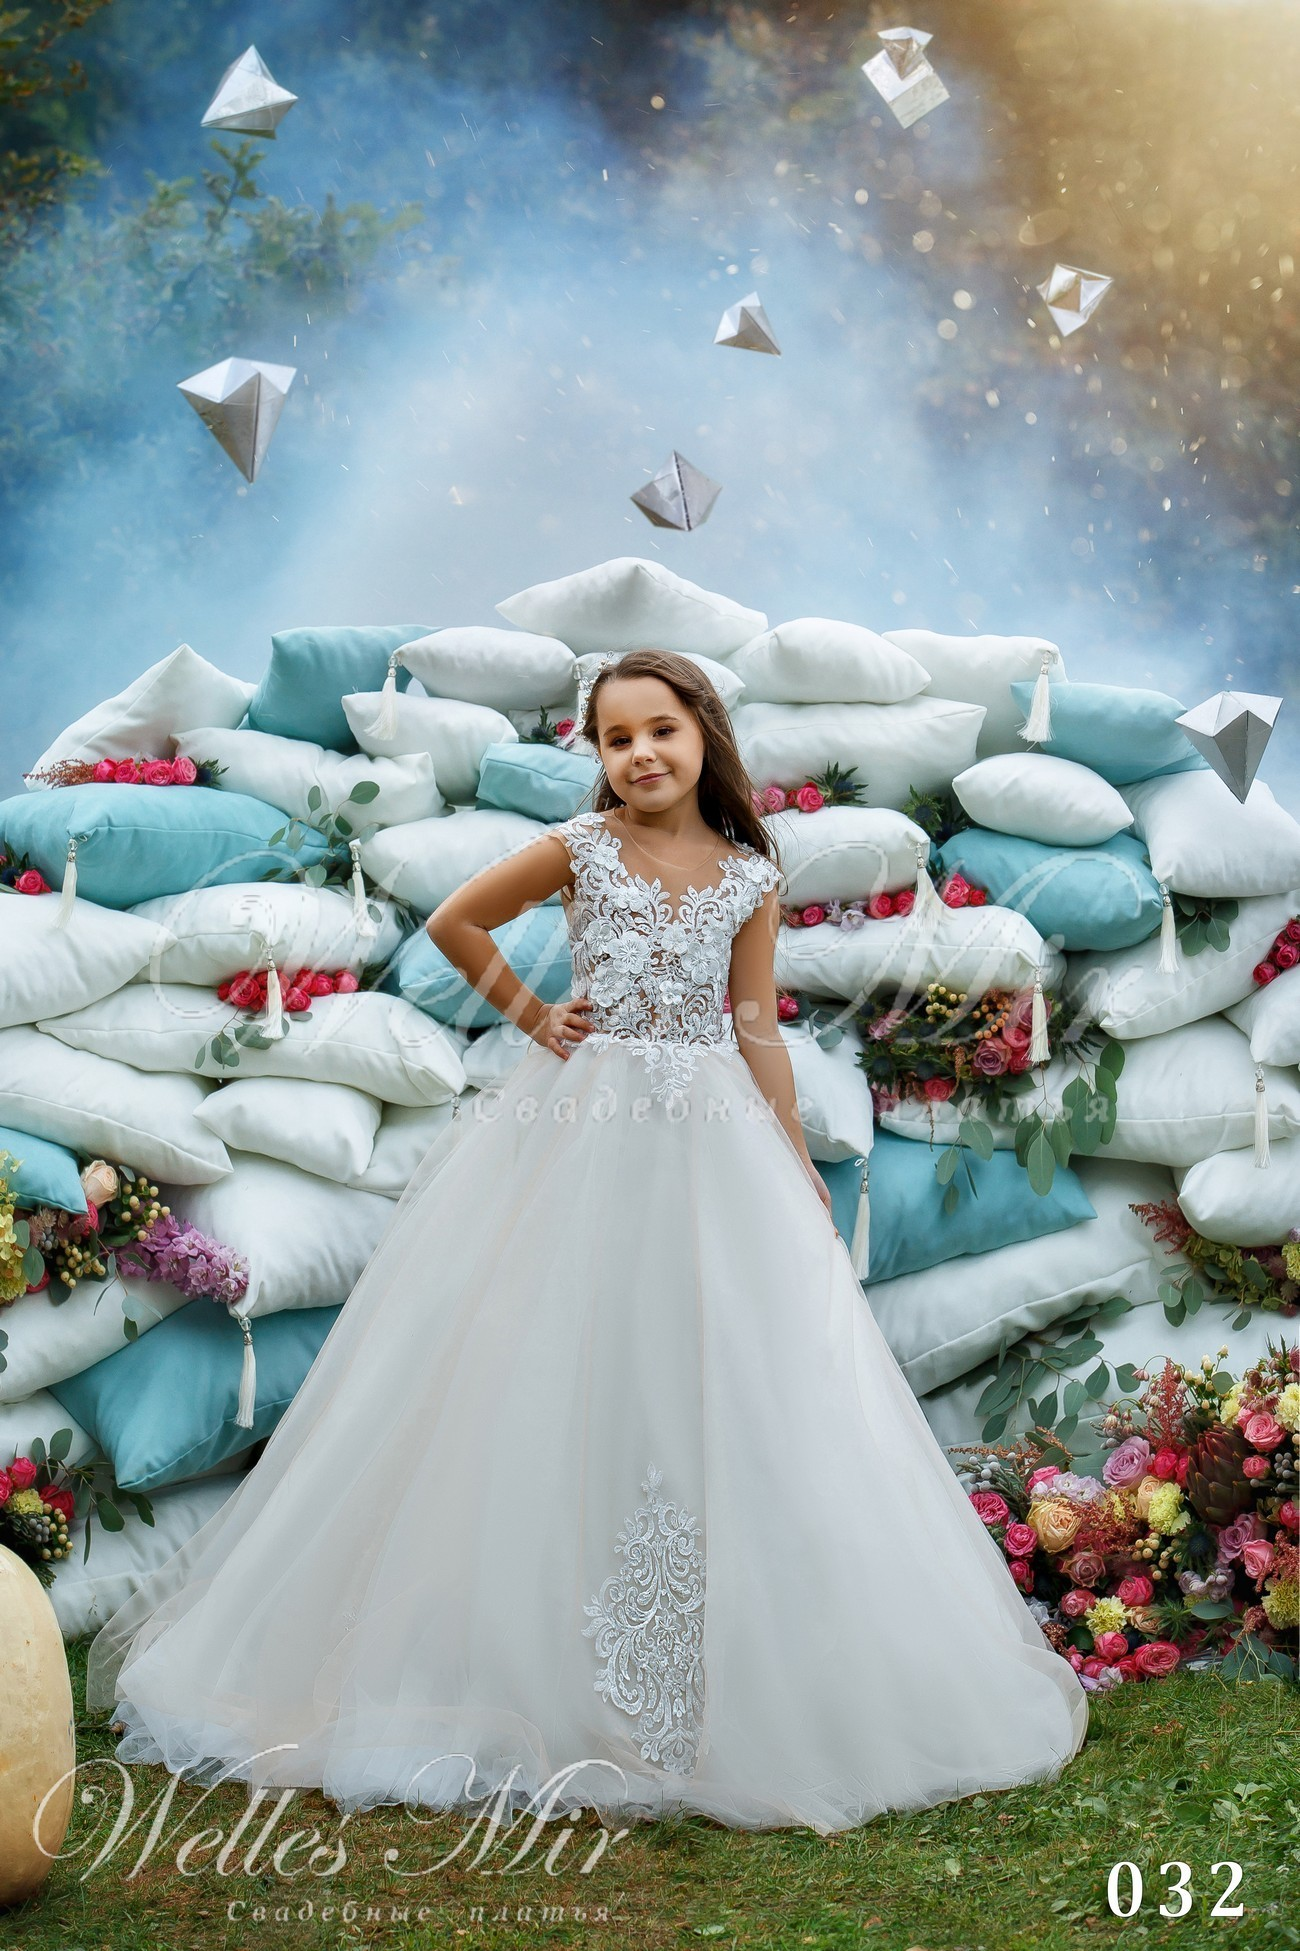 Kids Deluxe Collection 2018 - 032